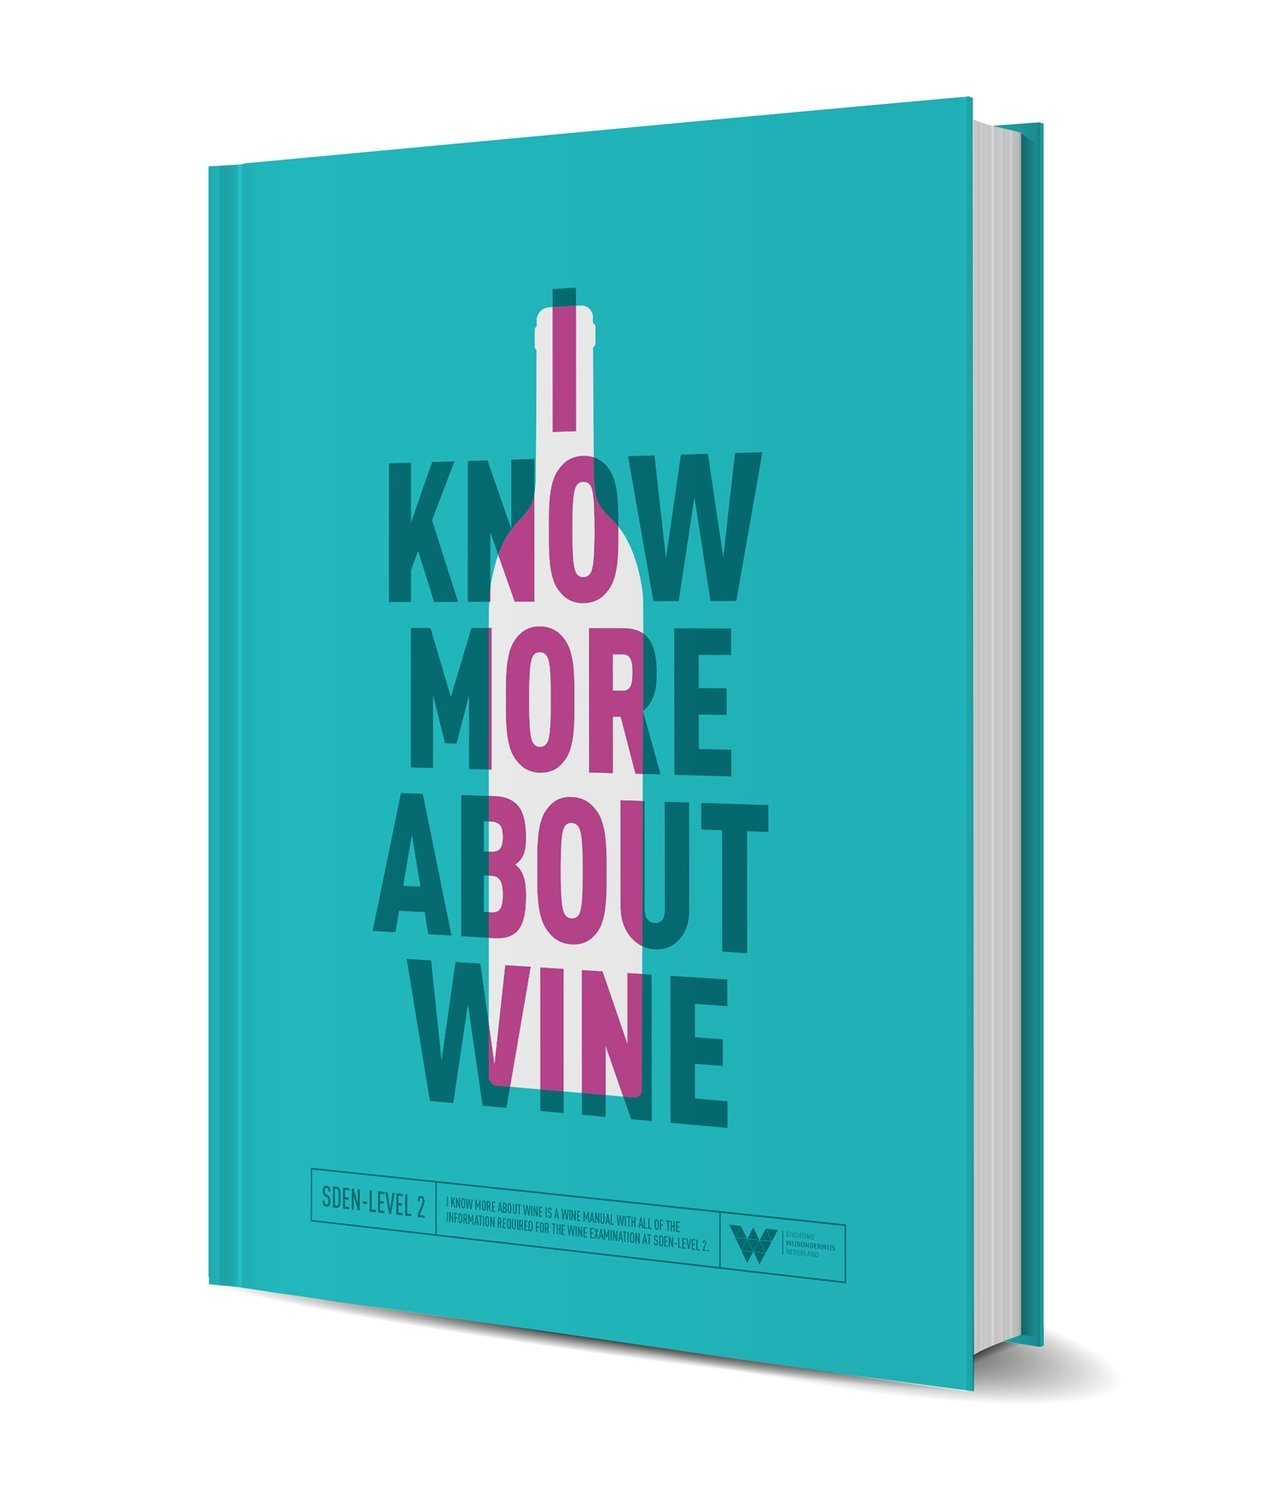 English Book: I know more about wine